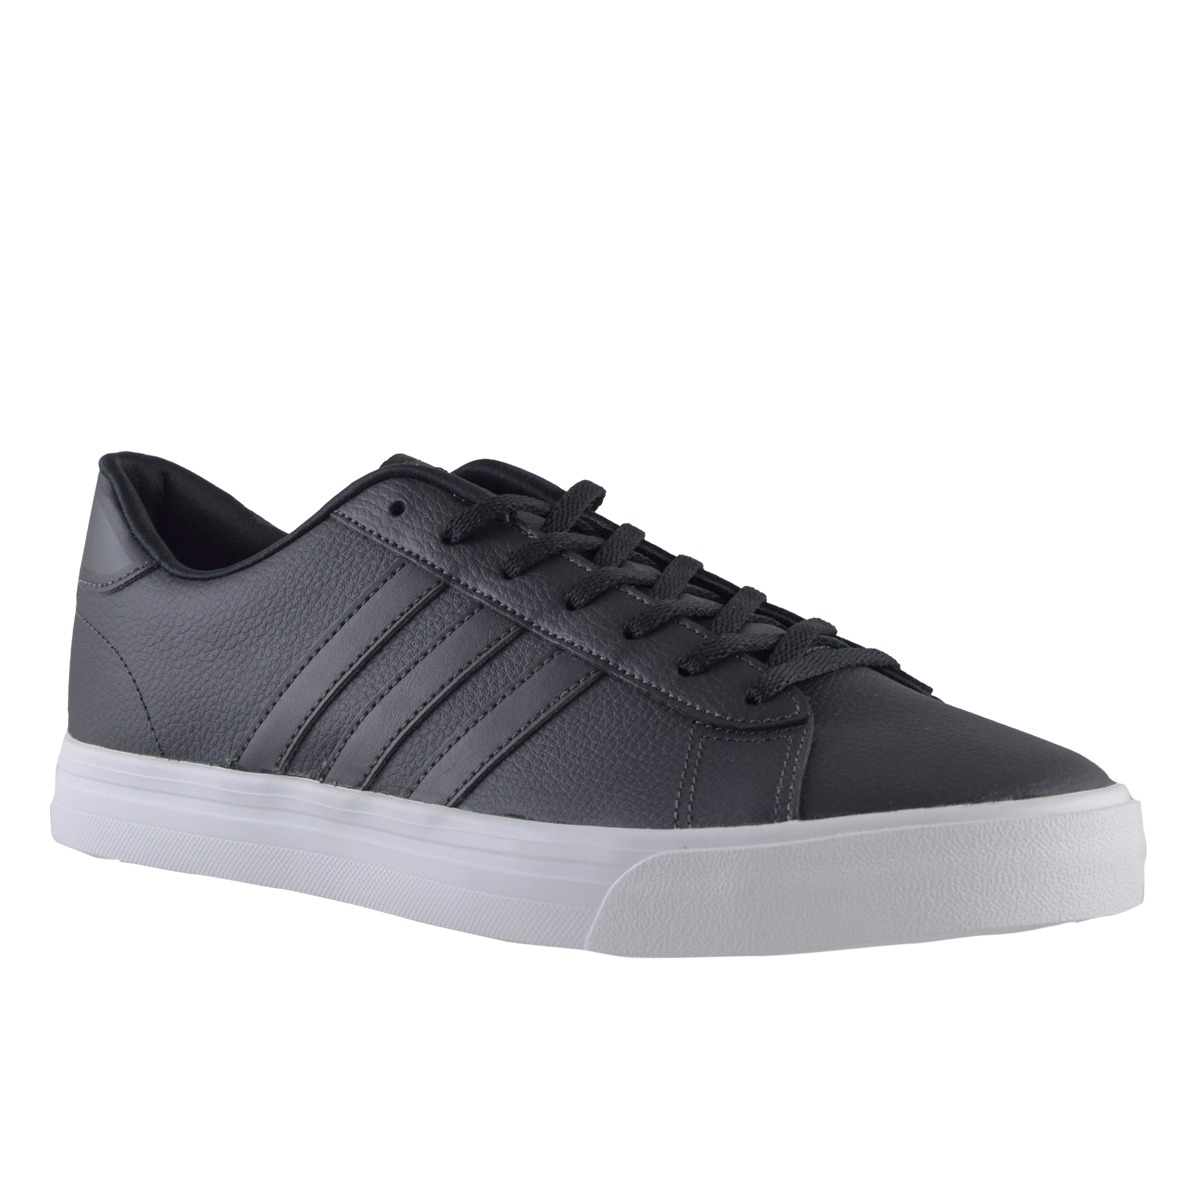 Chaussures Dalliy Homme Noir 40 Ue / 10us pas cher marchand achats réduction aaa EMbIiQnXhj